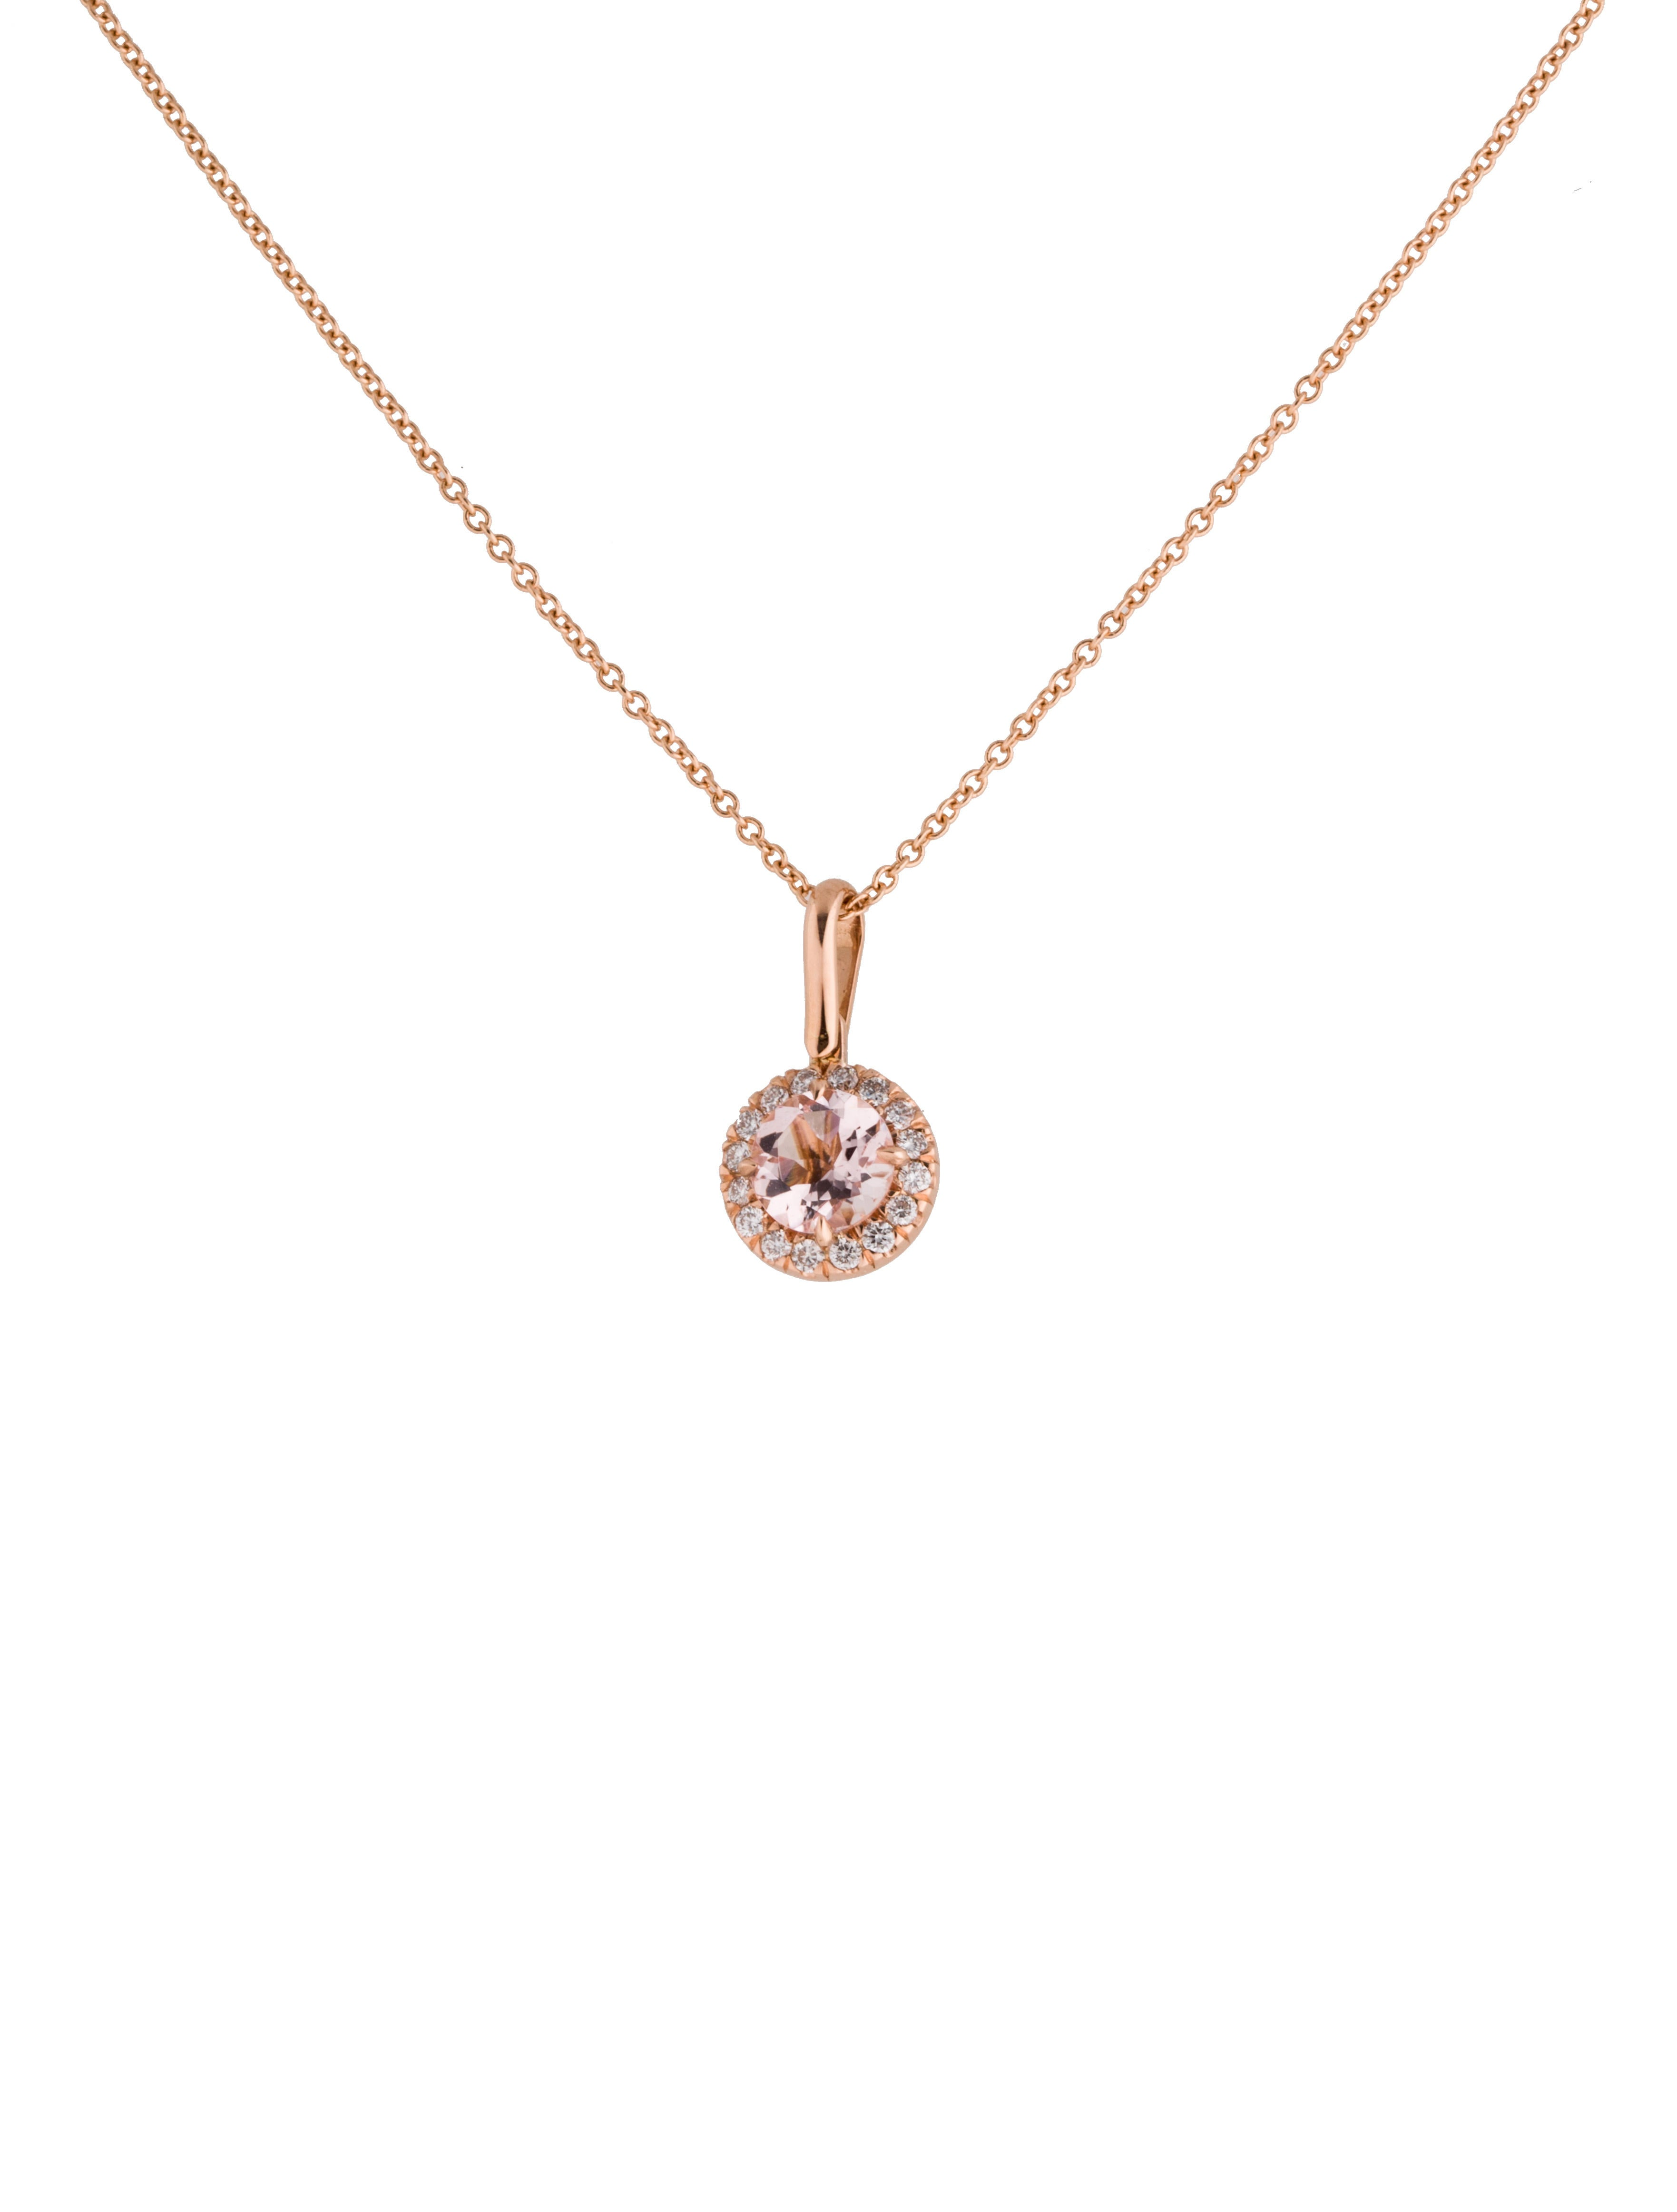 Fine jewelry necklace pink morganite and diamond necklace for Fine jewelry diamond pendants